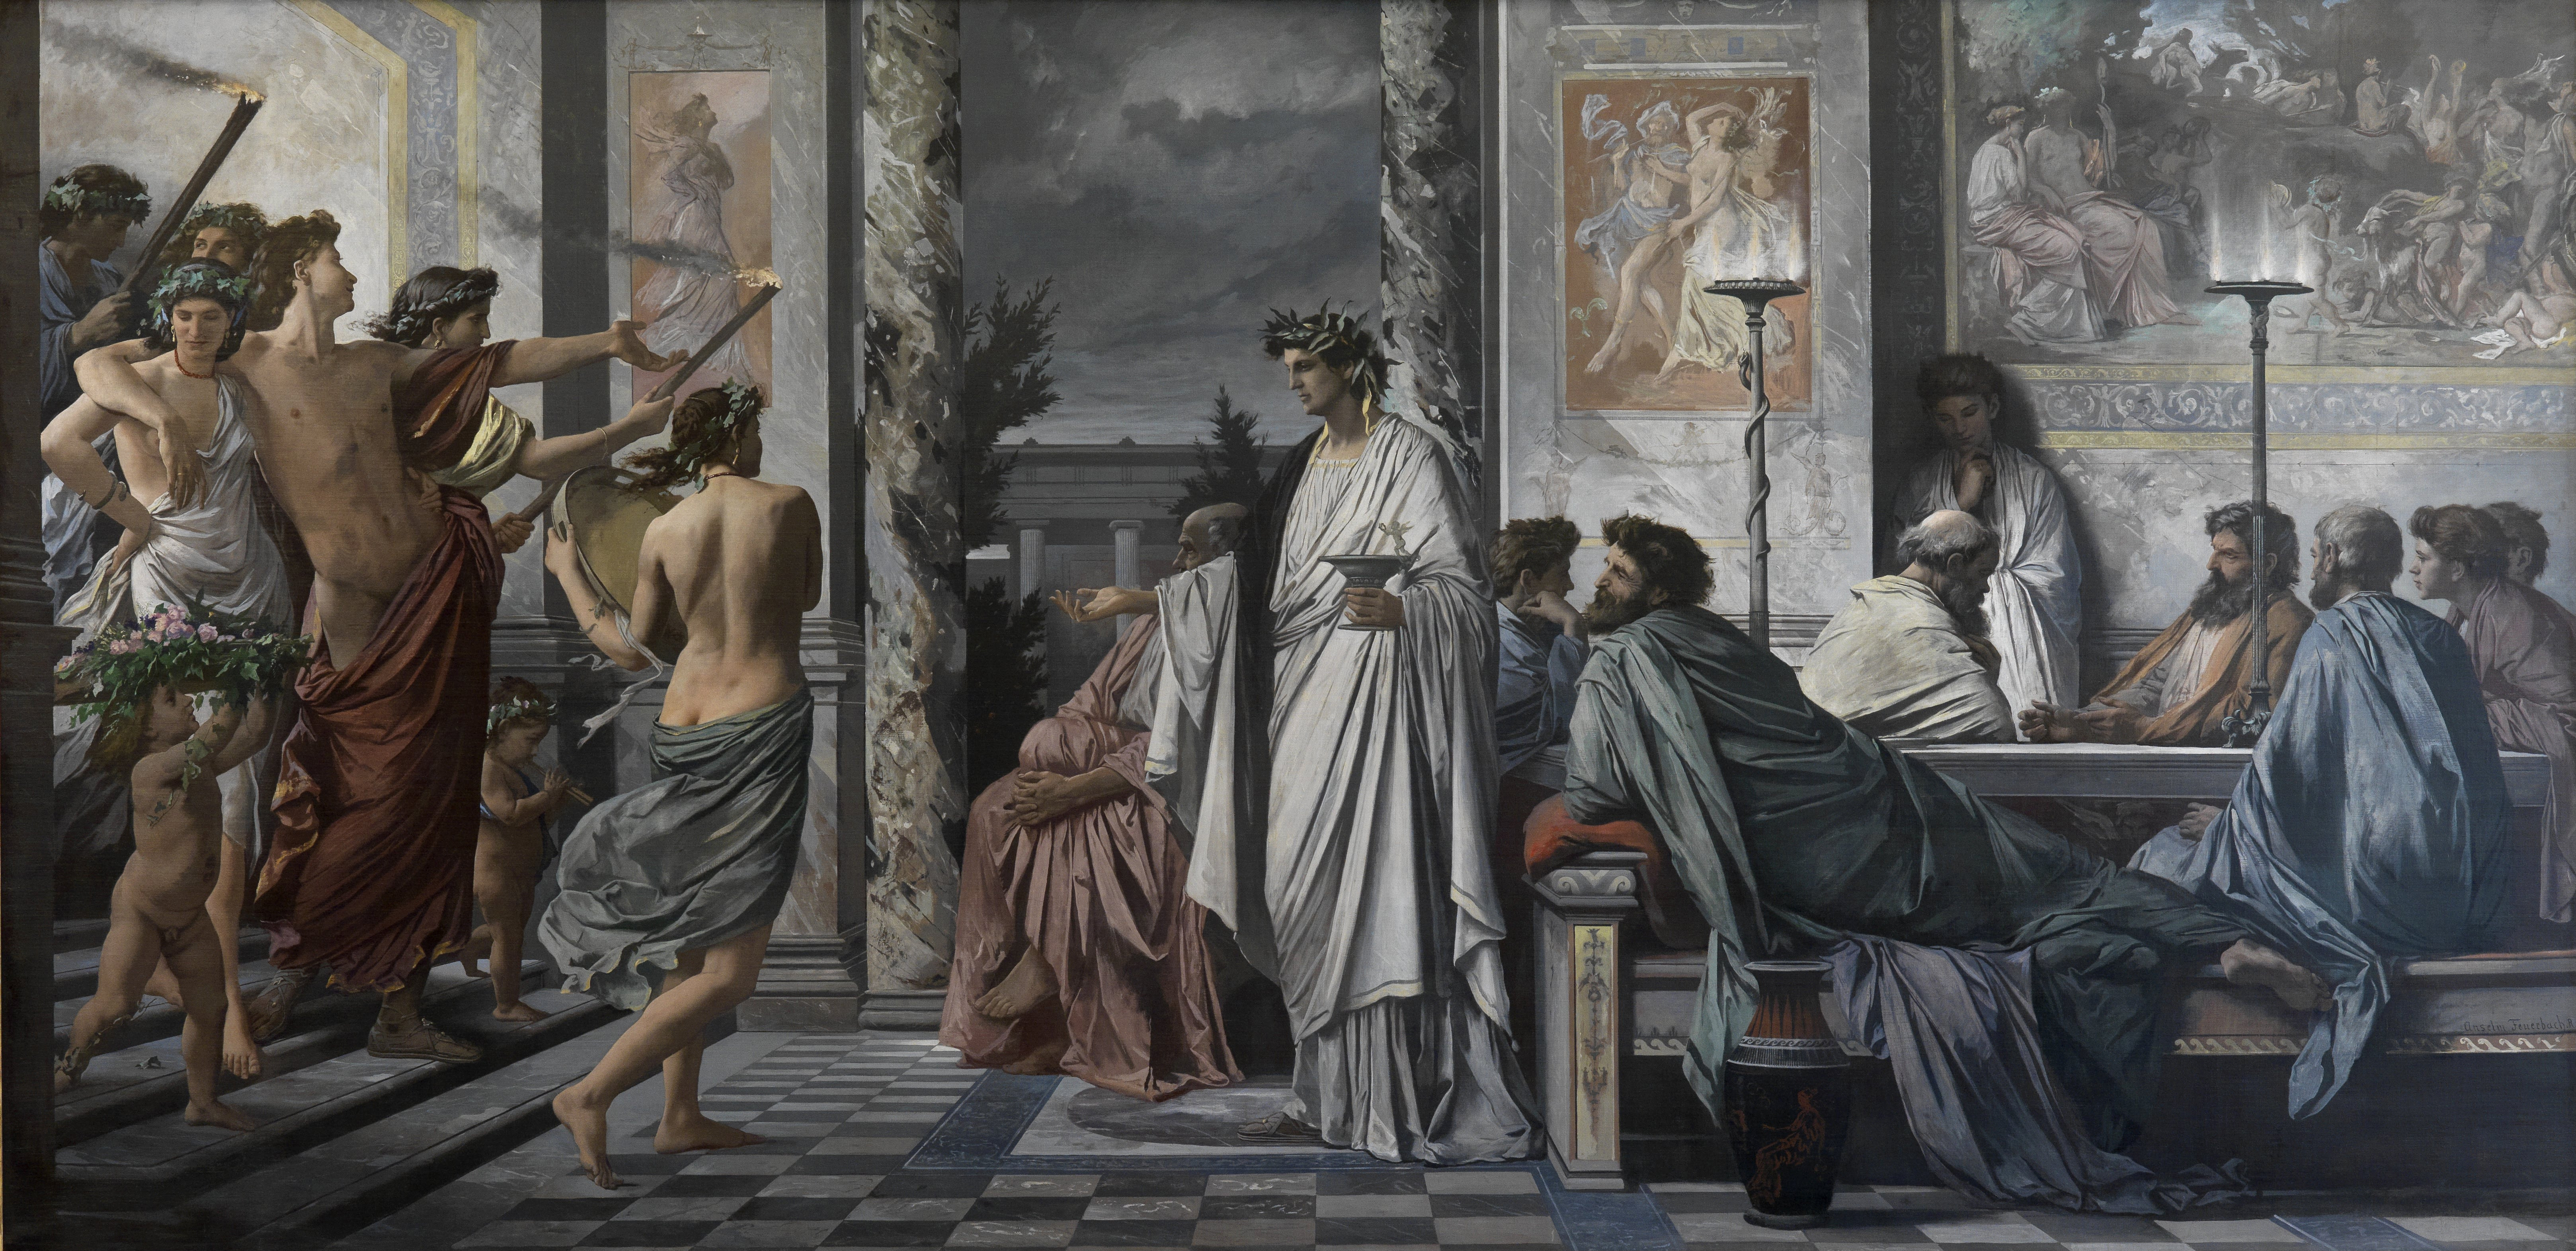 a discussion on socrates ideas about eros in the symposium and the phaedrus